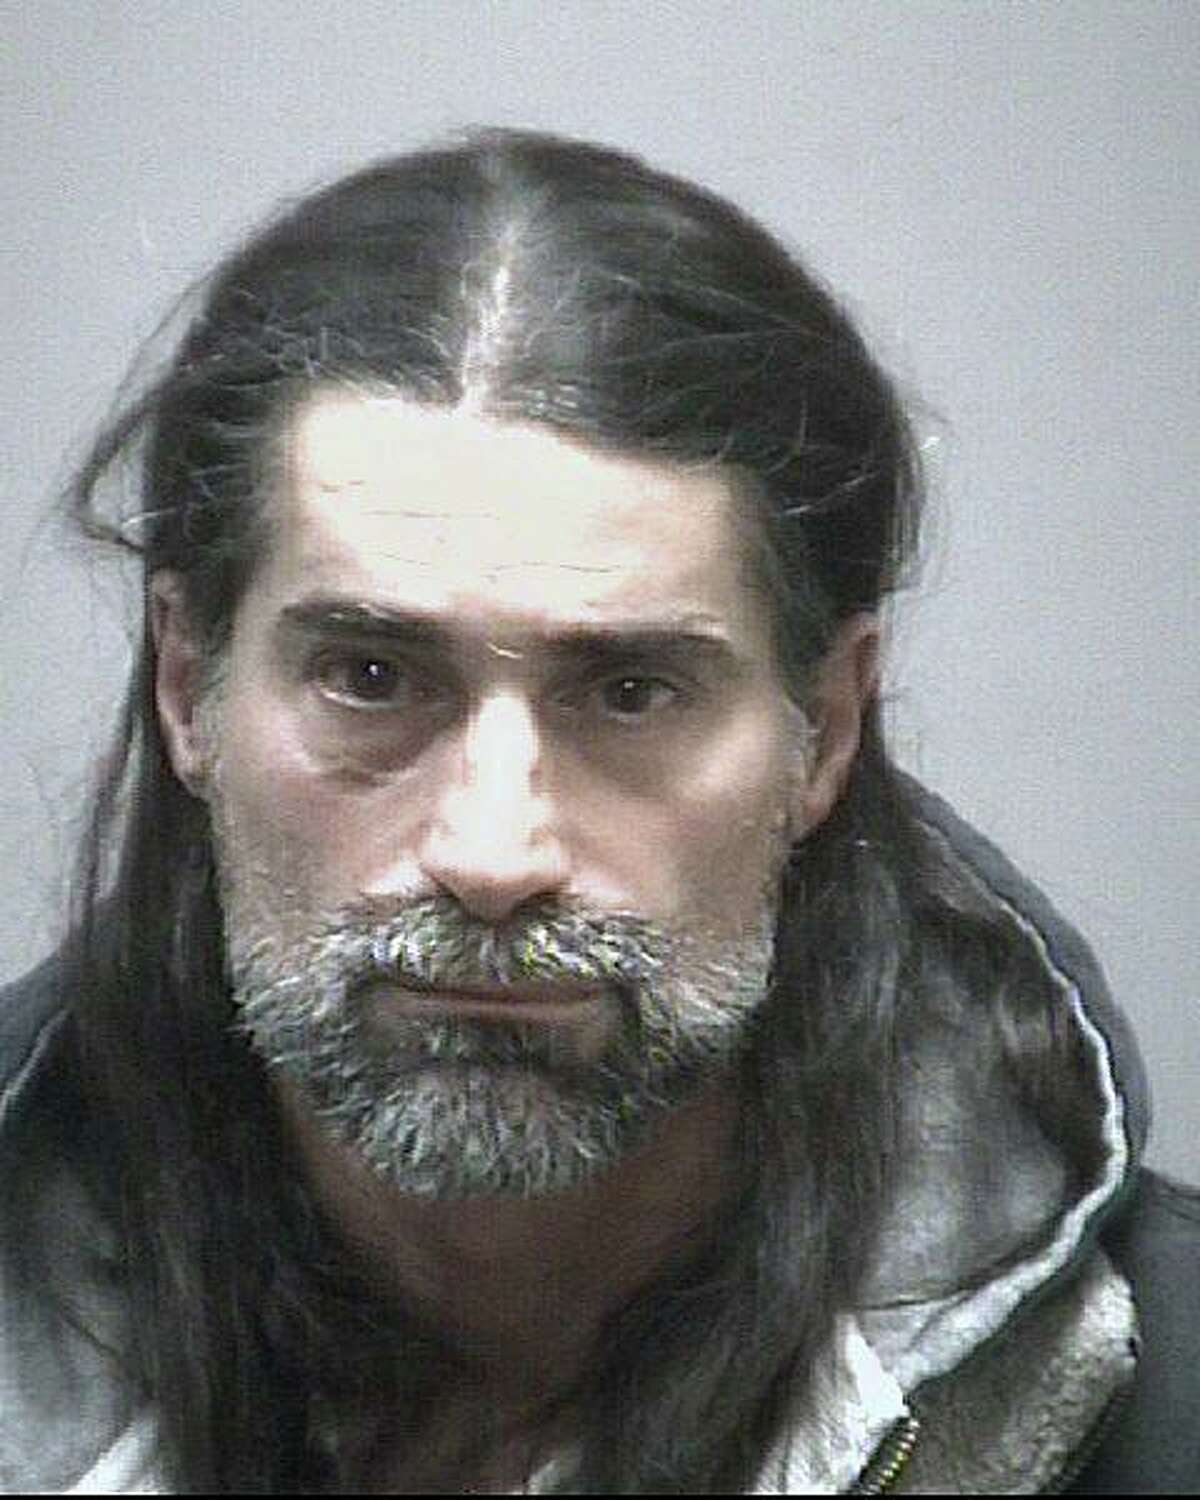 Robert Parris Jr., 53, was charged by New Haven, Conn., police with murder.